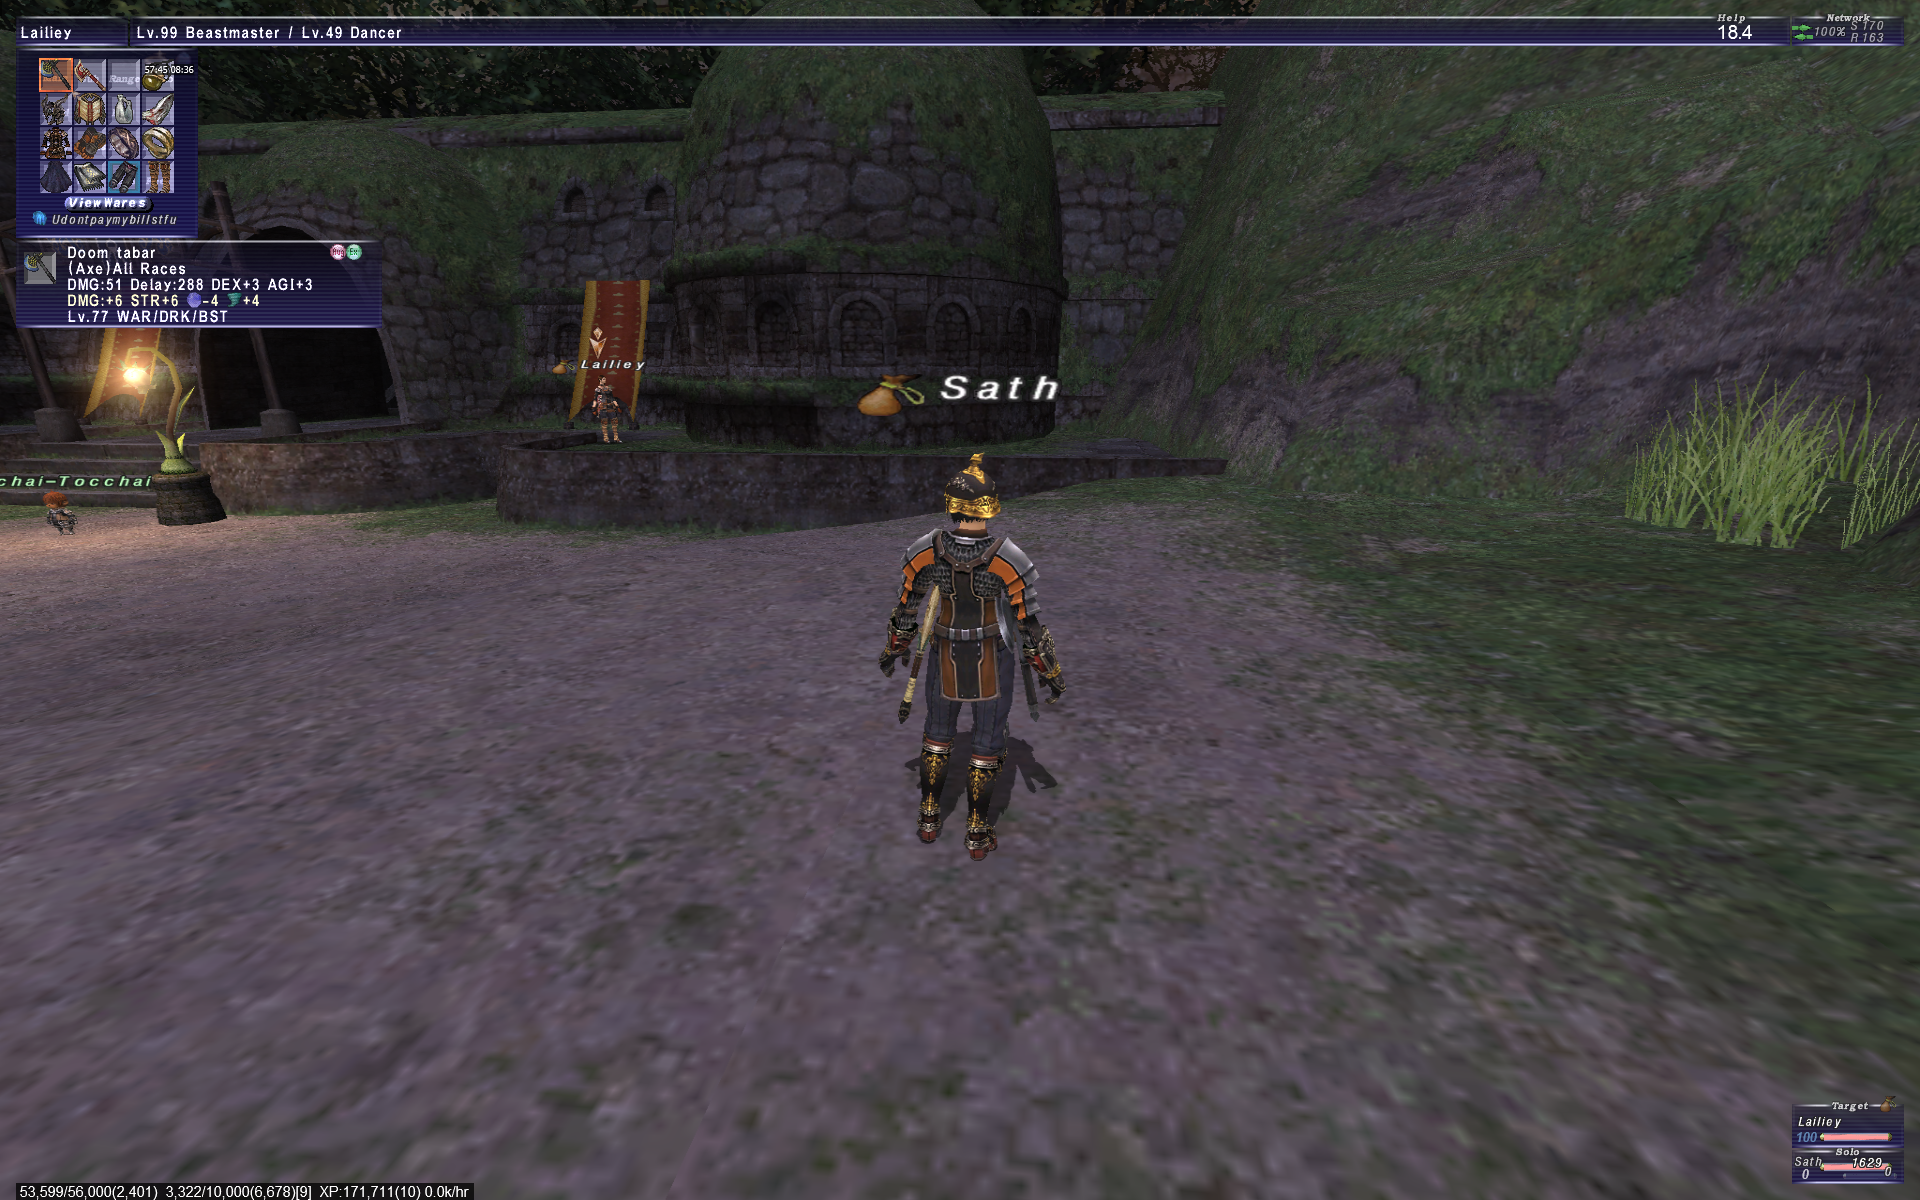 sathfenrir ffxi your bear also thread time spend fucks unemployed paying this economy taxes rest players sucking would without cock addictions german full about they money their commenting plays into wouldnt were social angry xxiii player guys rude being trying impress decade almost gimpconfusedwtf jobs enough well playing started dont